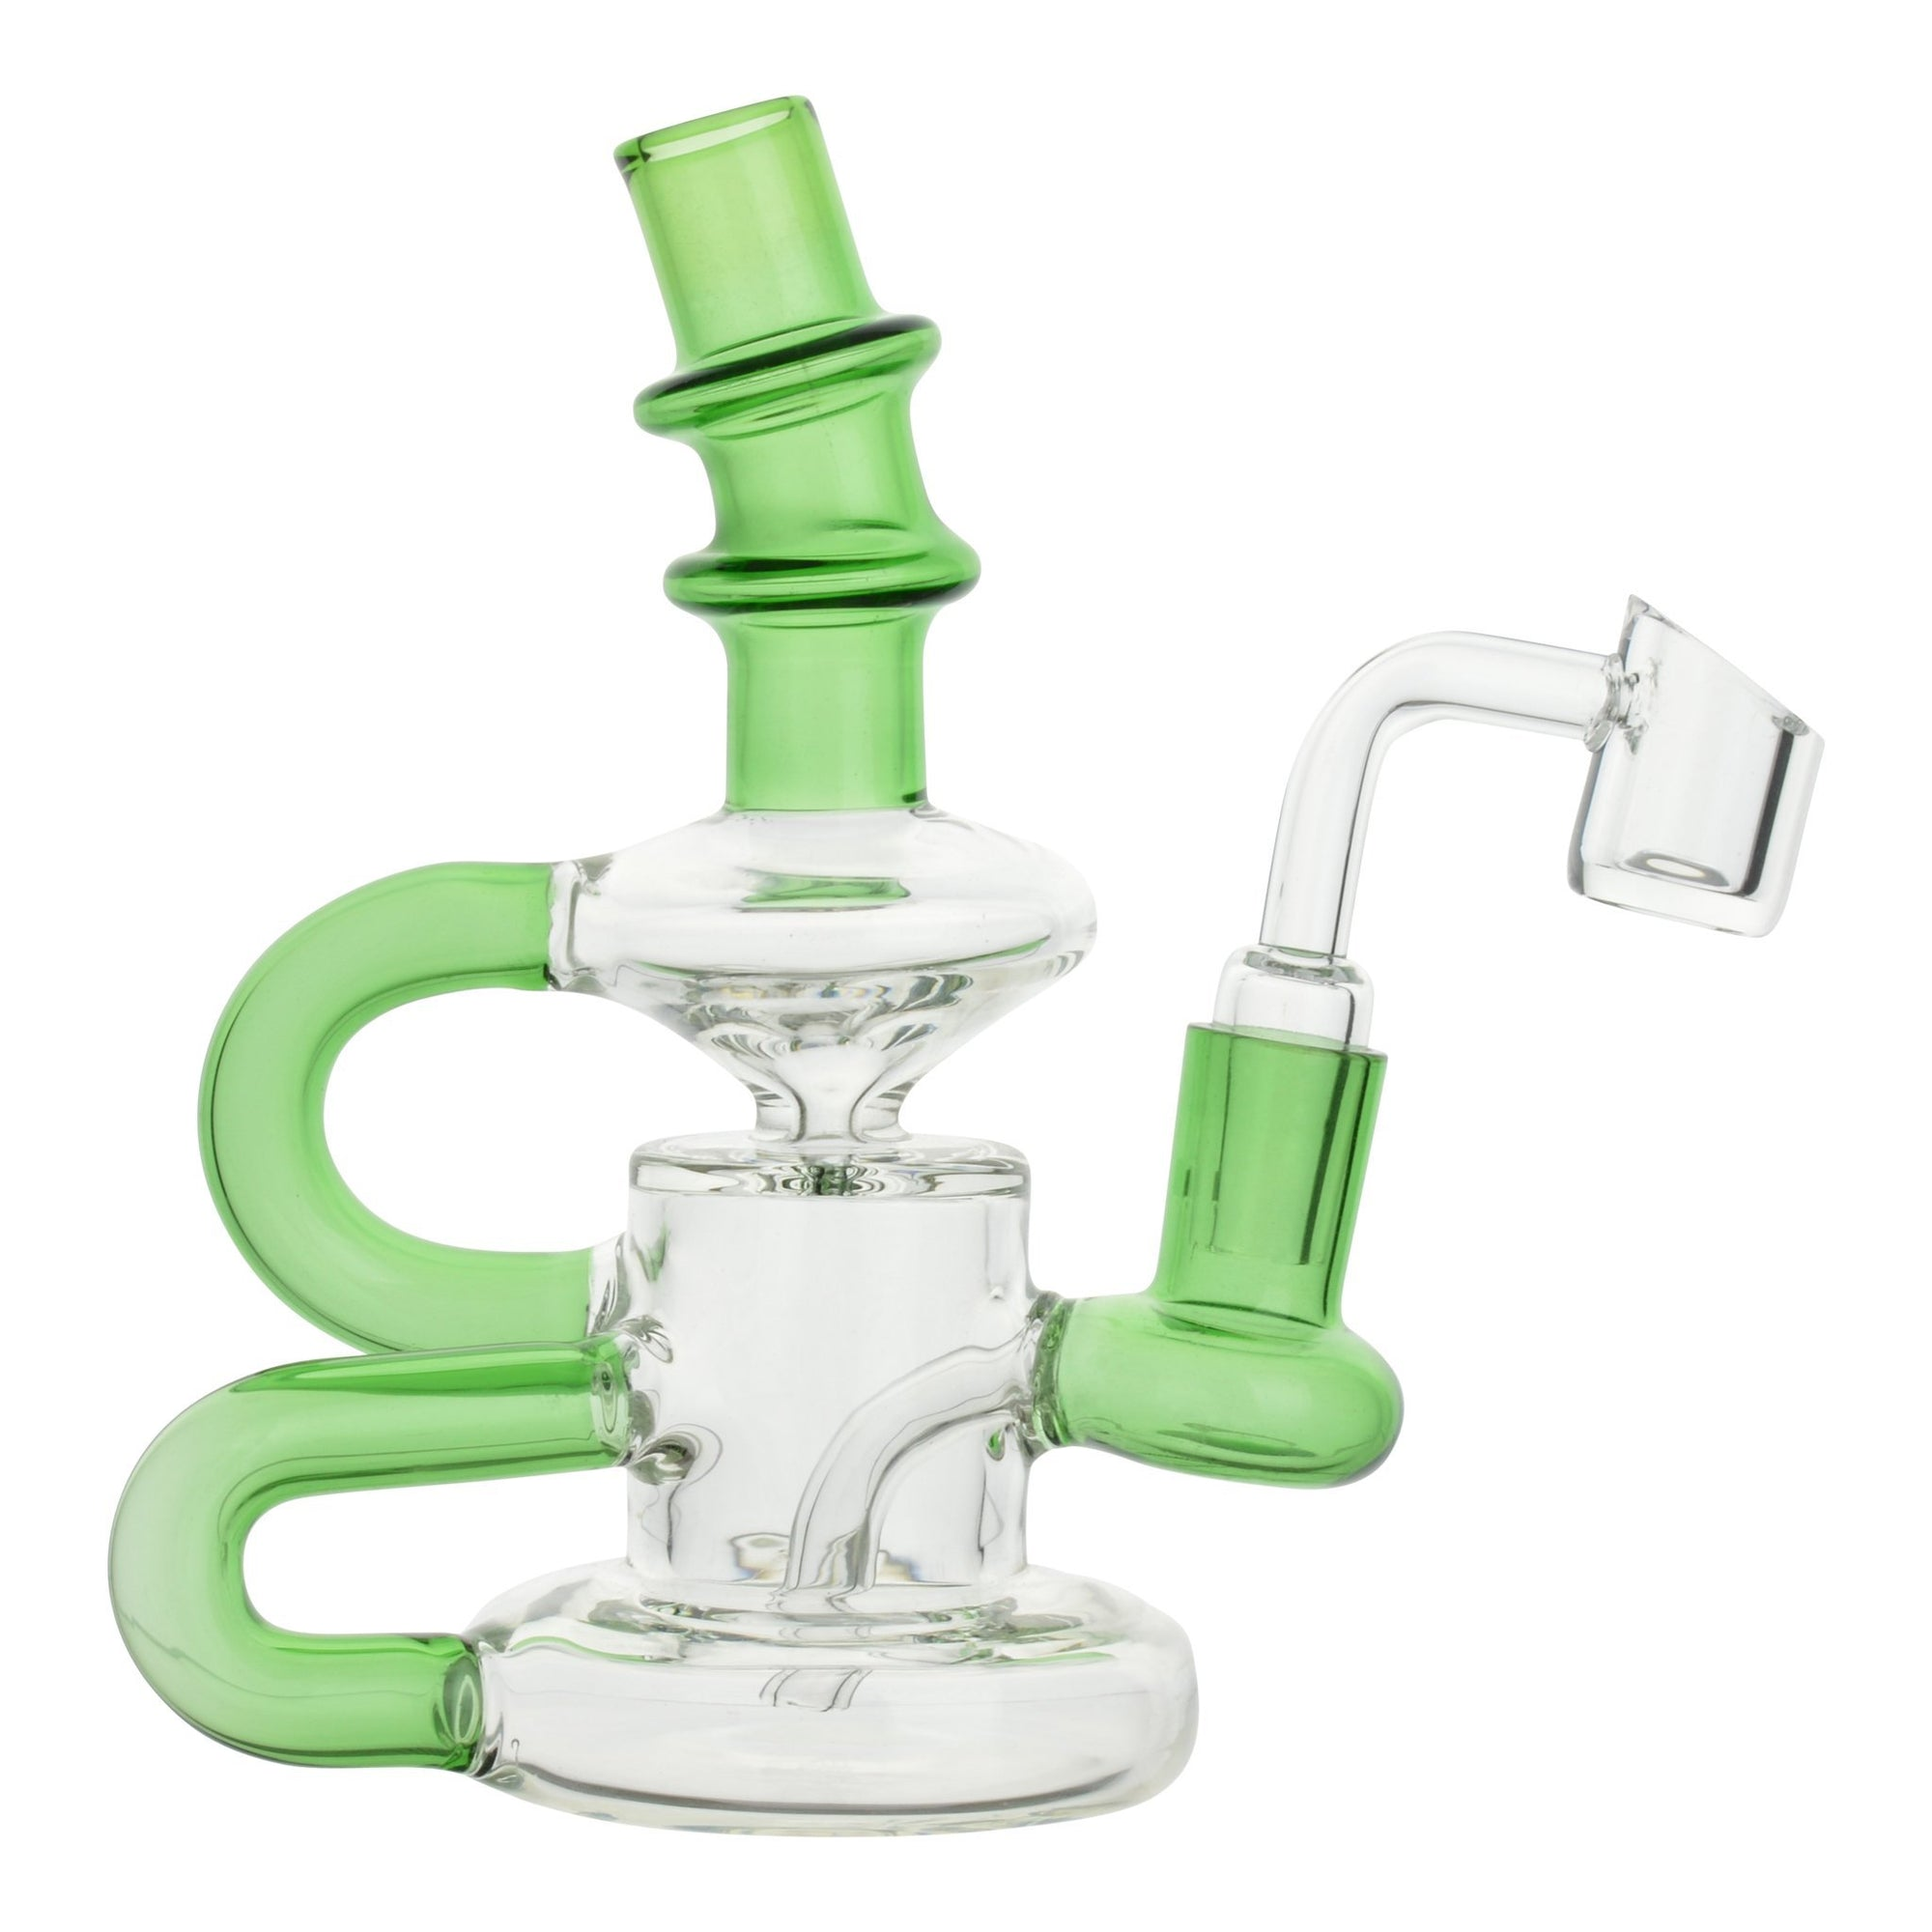 Full front shot of 6 inch glass dab rig green and clear colors mouthpiece facing left banger on the right spiral B shape